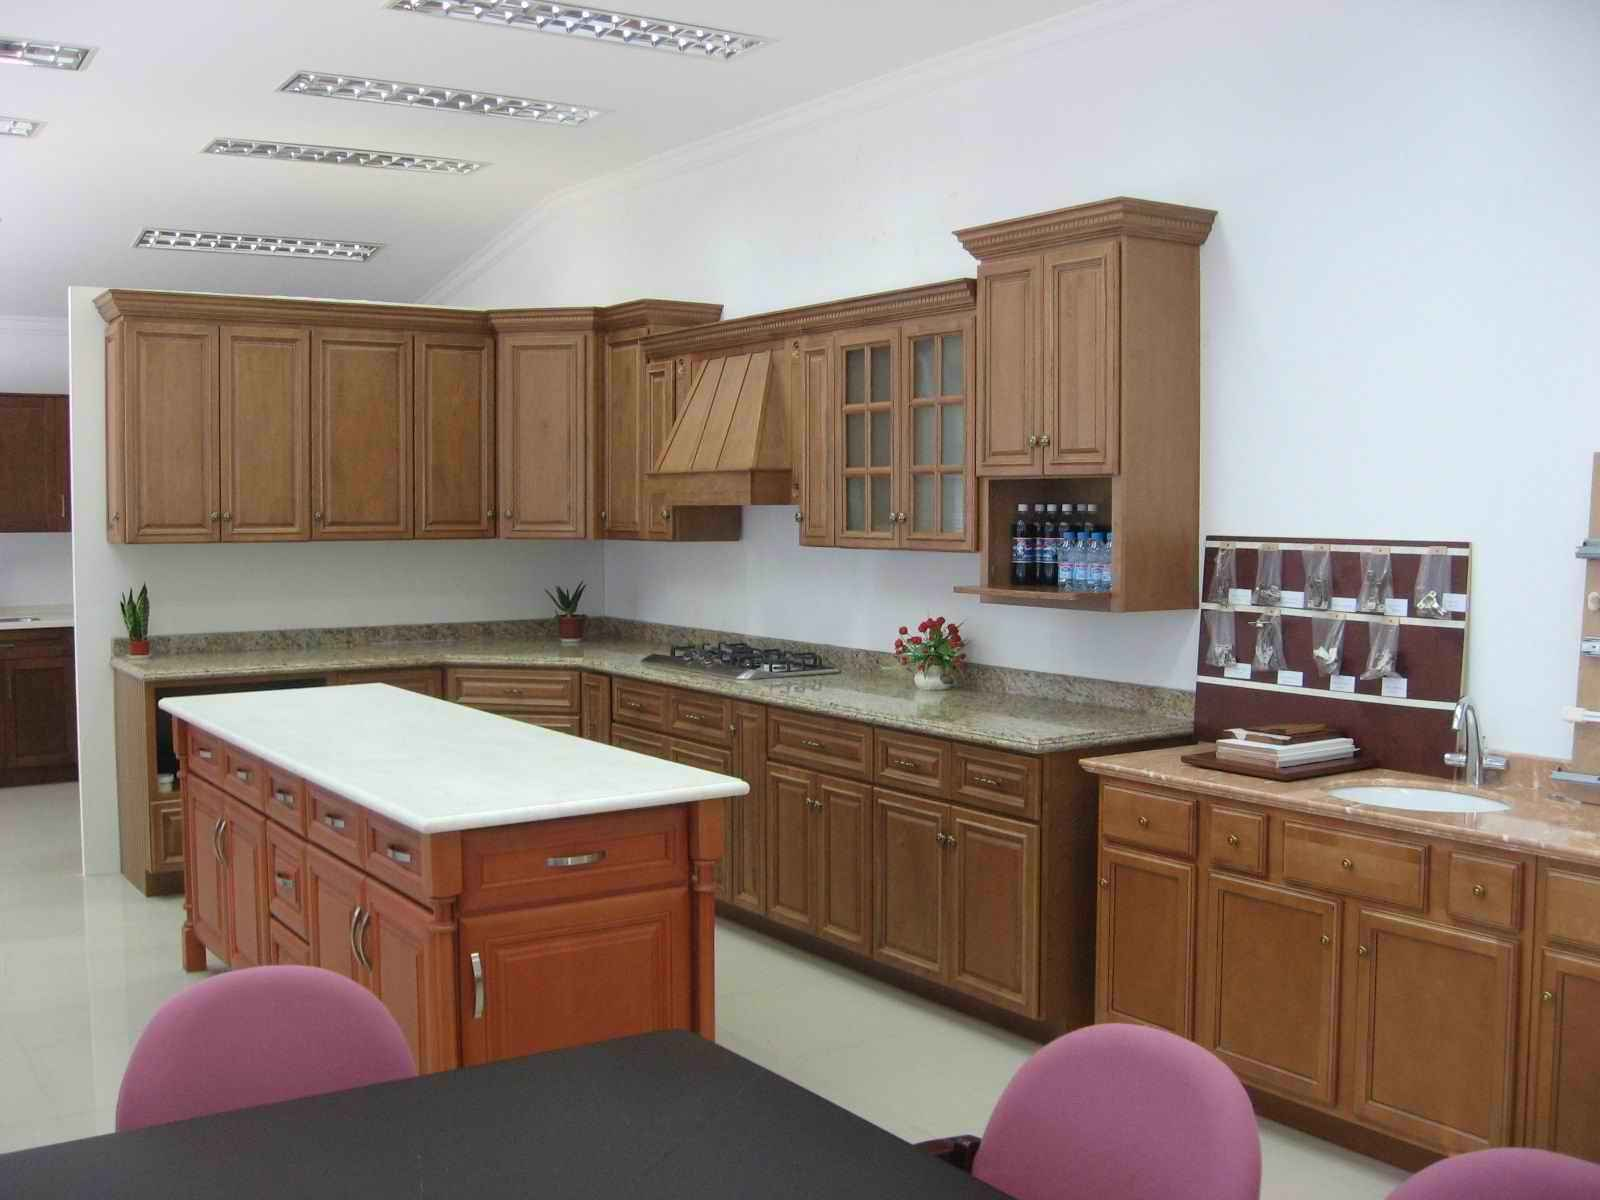 Cheap cabinets for kitchens shopping tips for Cheap wood kitchen cabinets